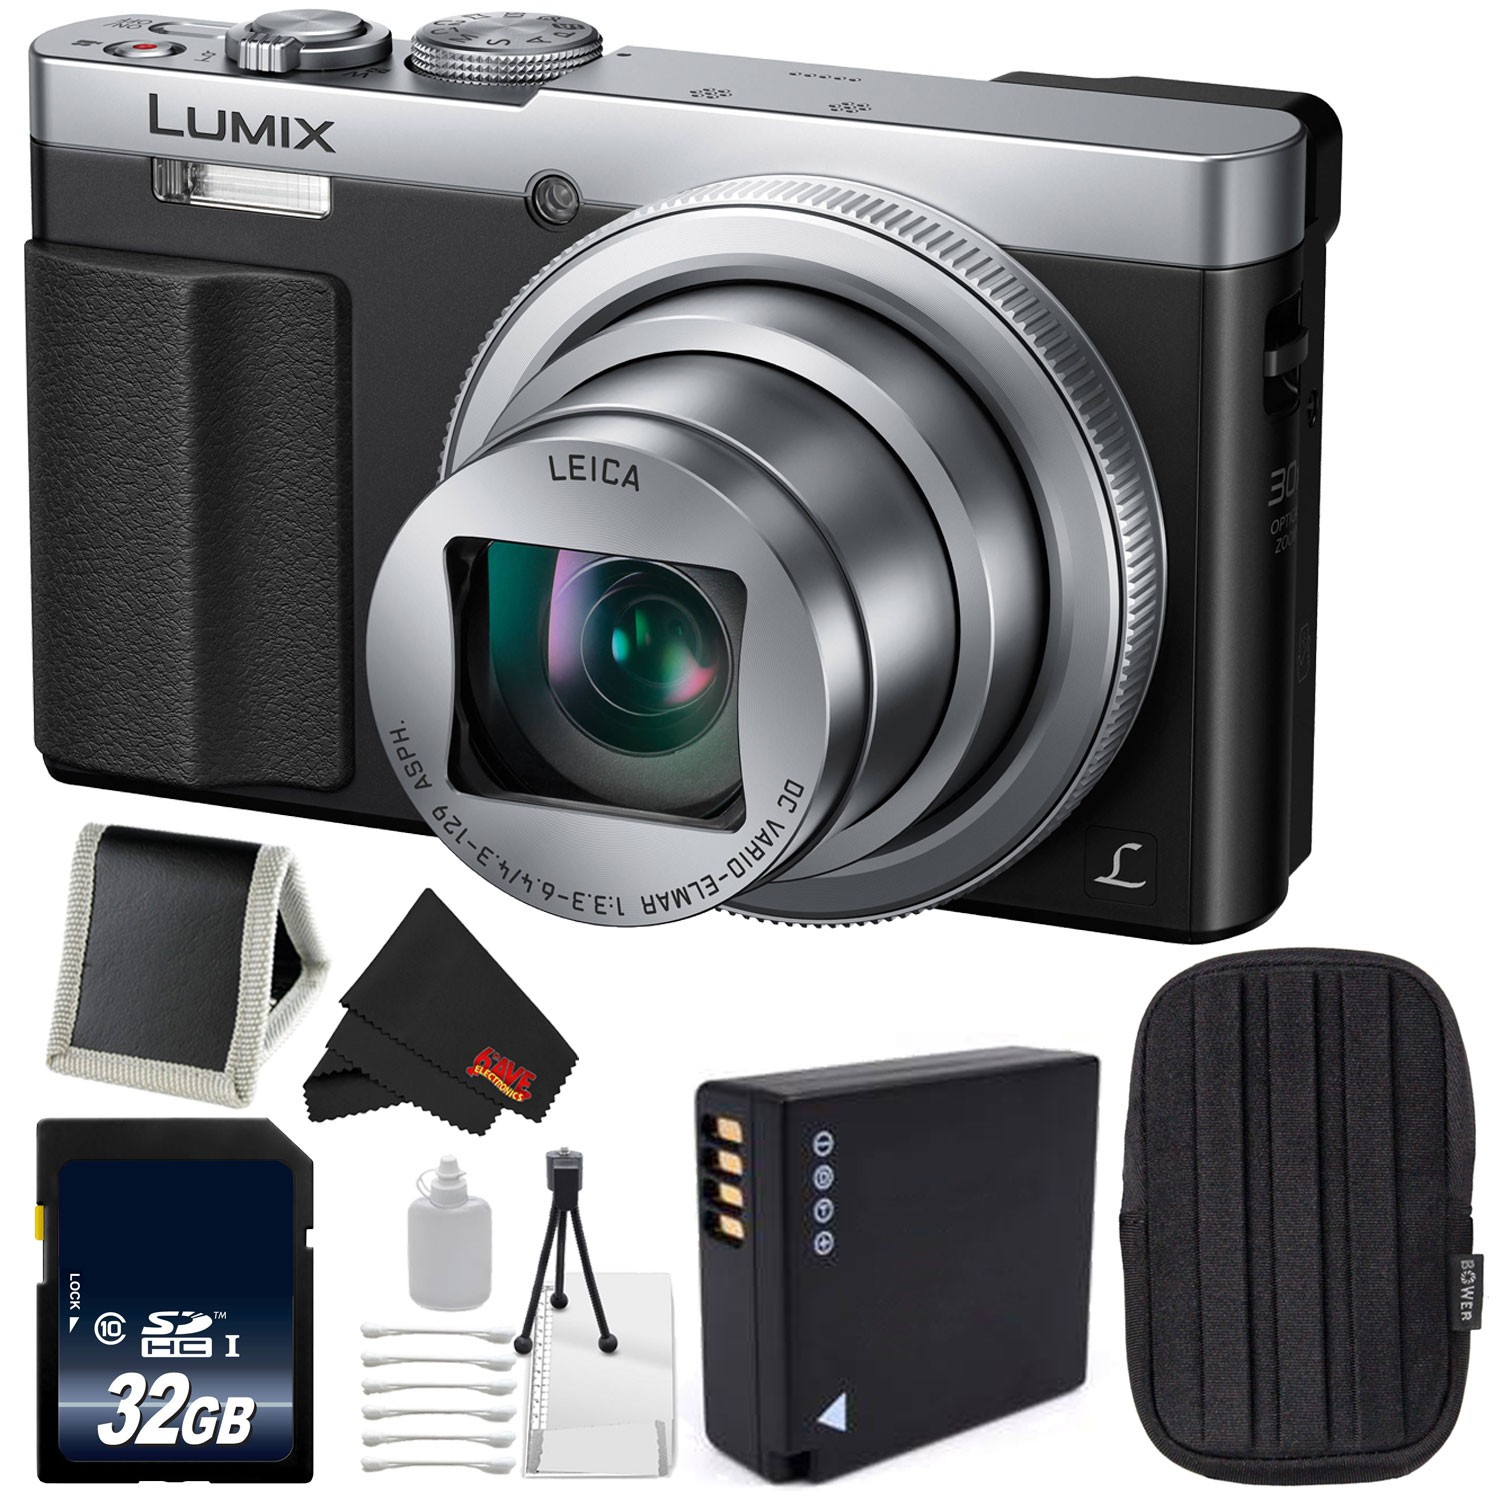 Panasonic Lumix DMC-ZS50 (Silver) Bundle with Carrying Case + 32GB Memory Card (Intl Model)